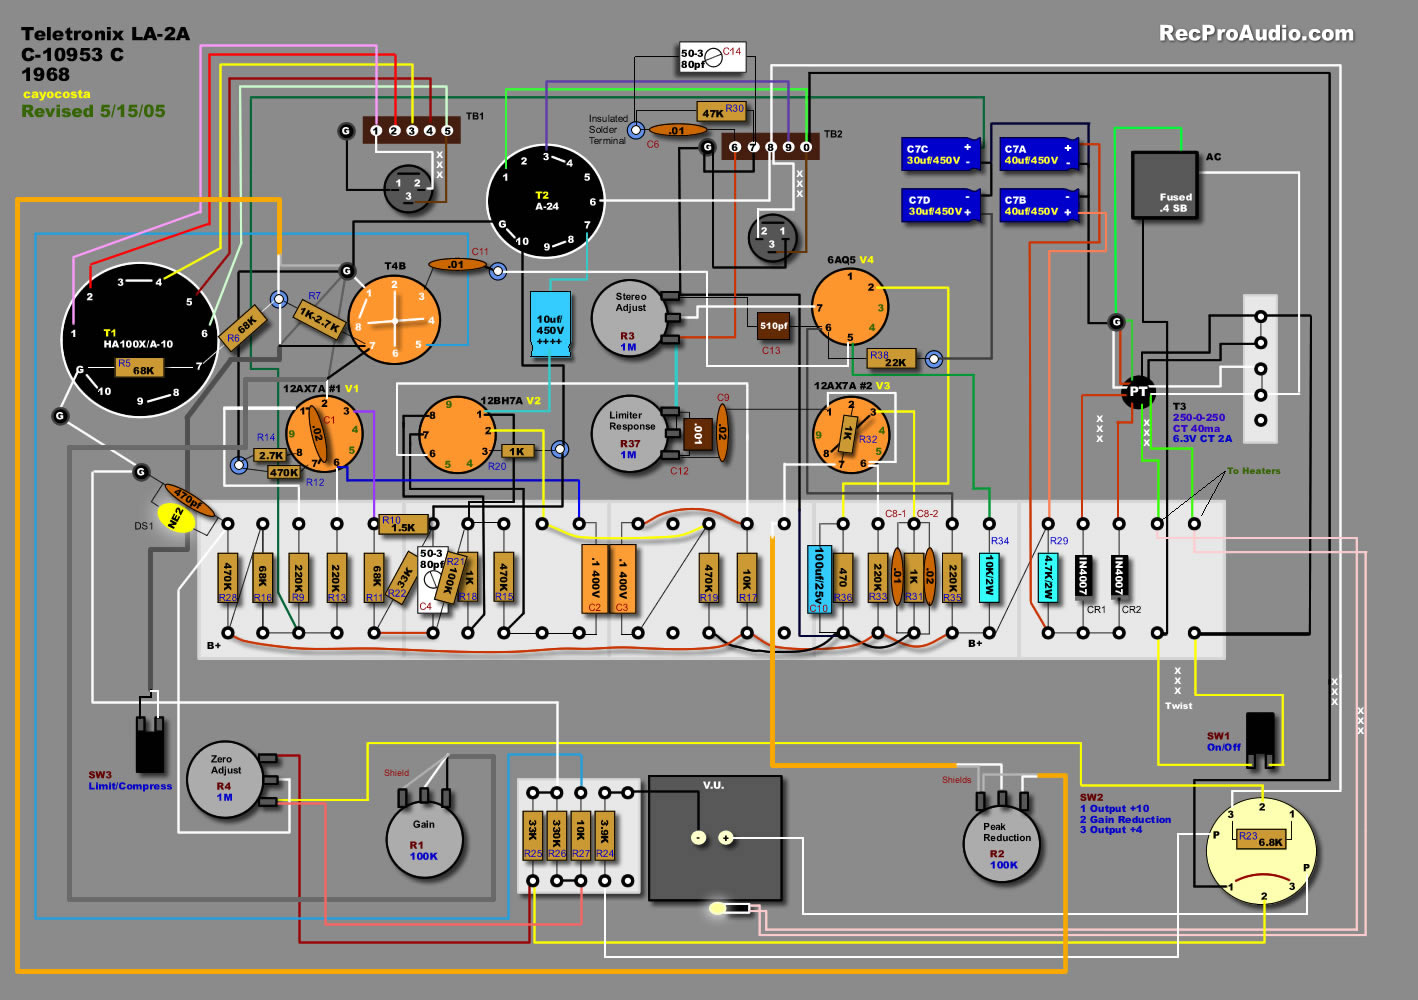 DIY - Build your own La2a compressor, Pultec EQ and more. - Page 3